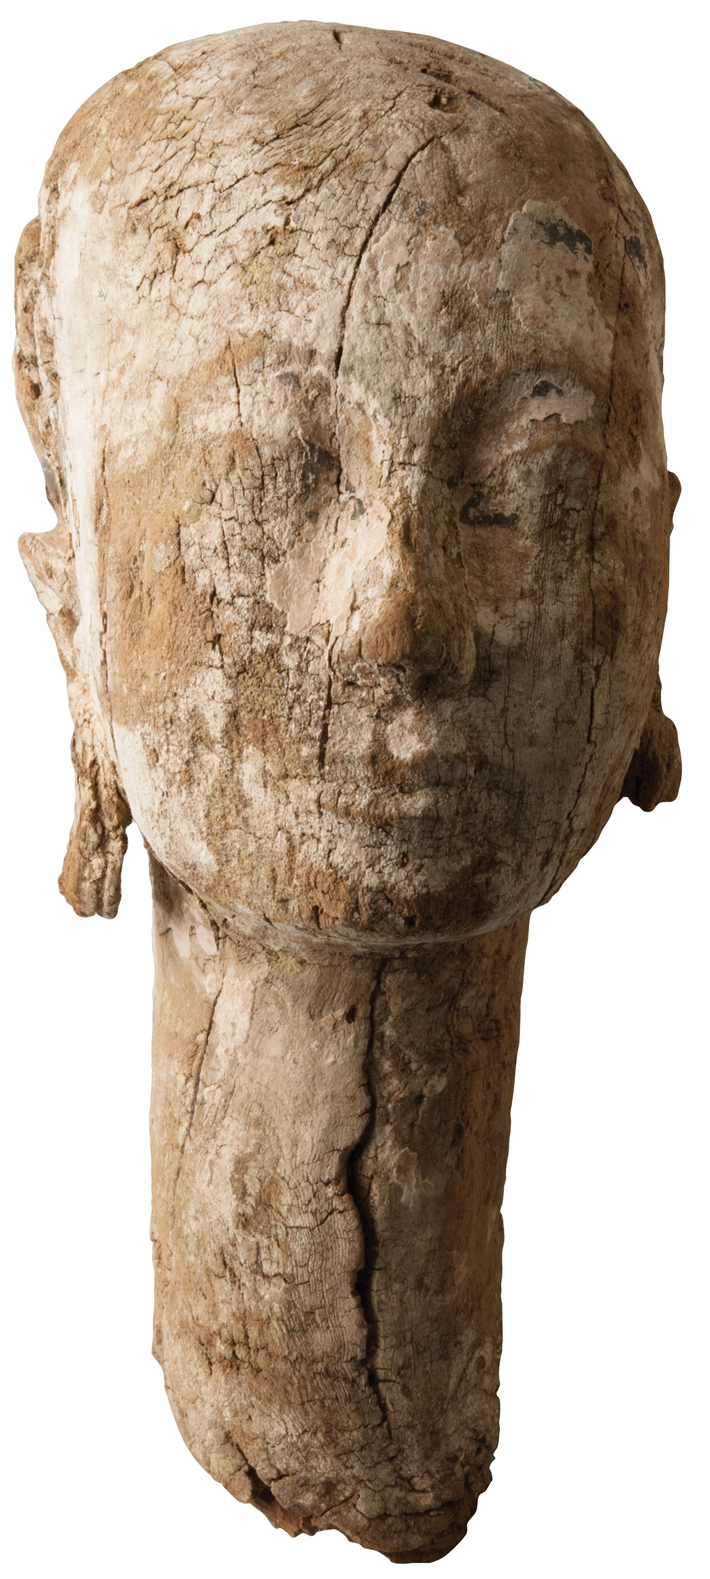 Trenches Egypt Saqqara Wooden Statue Head